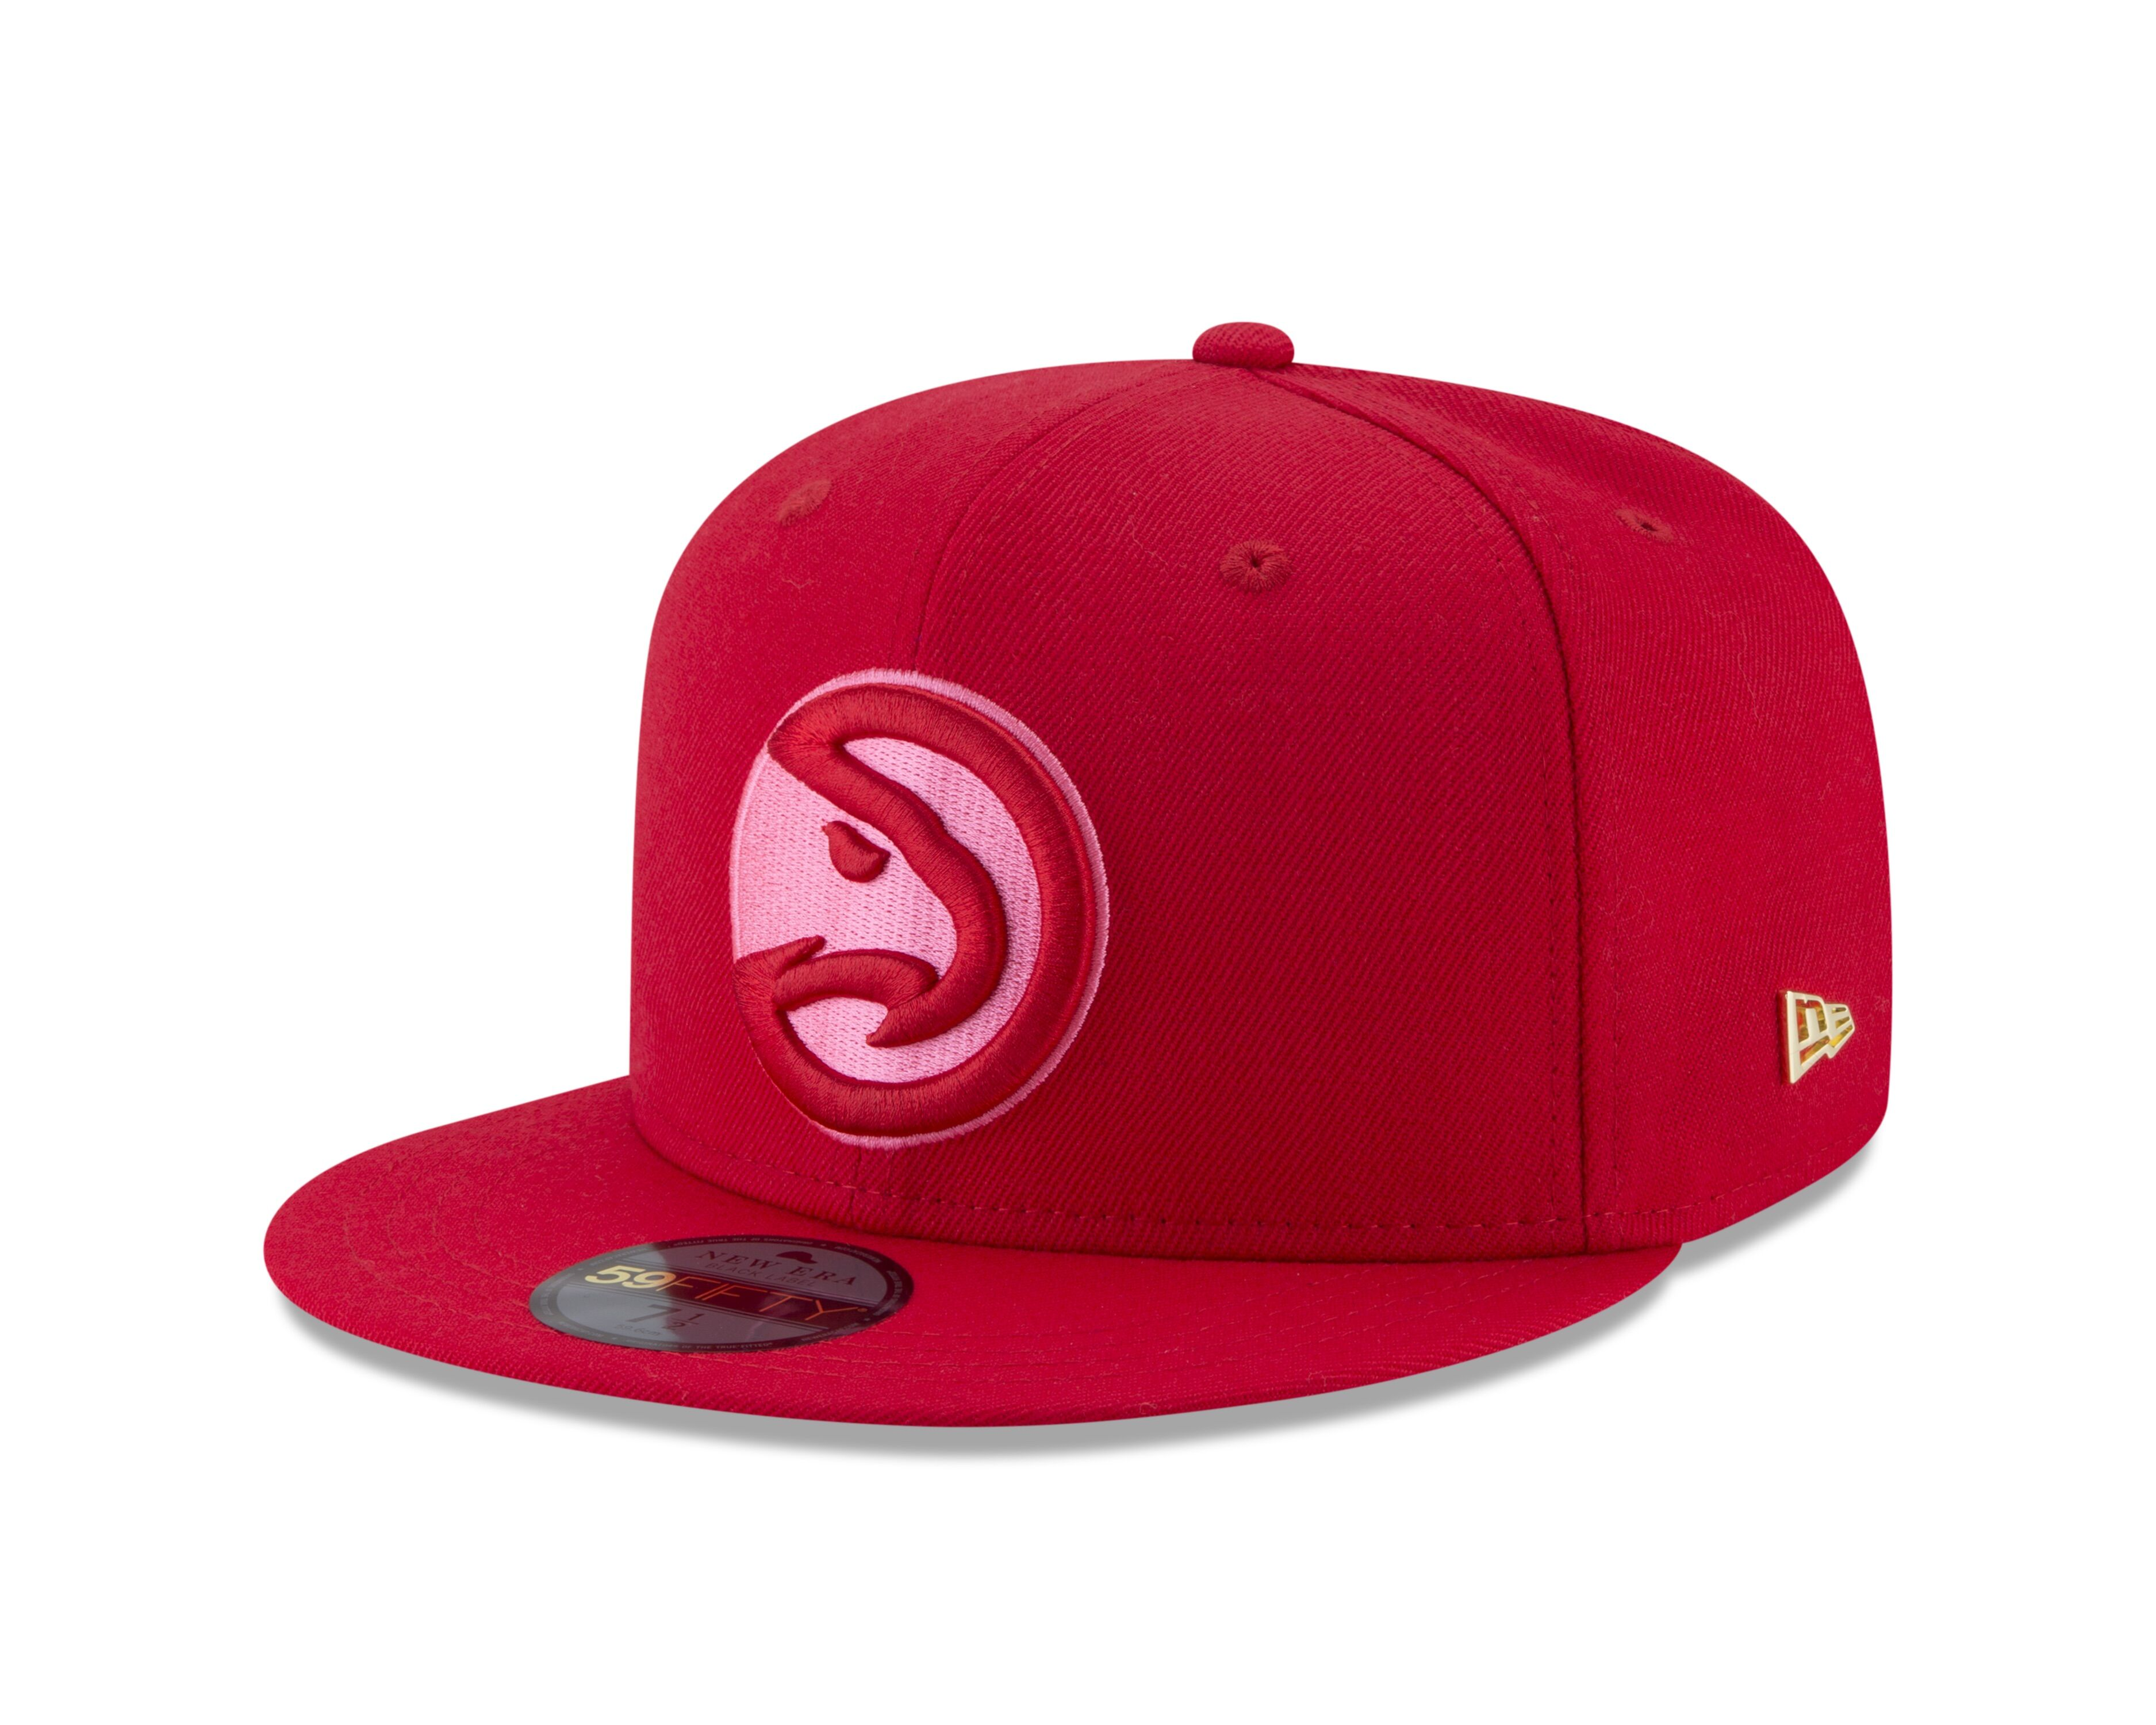 4bed529df33 New Era Black Label NBA line allows fans to share players  style ...